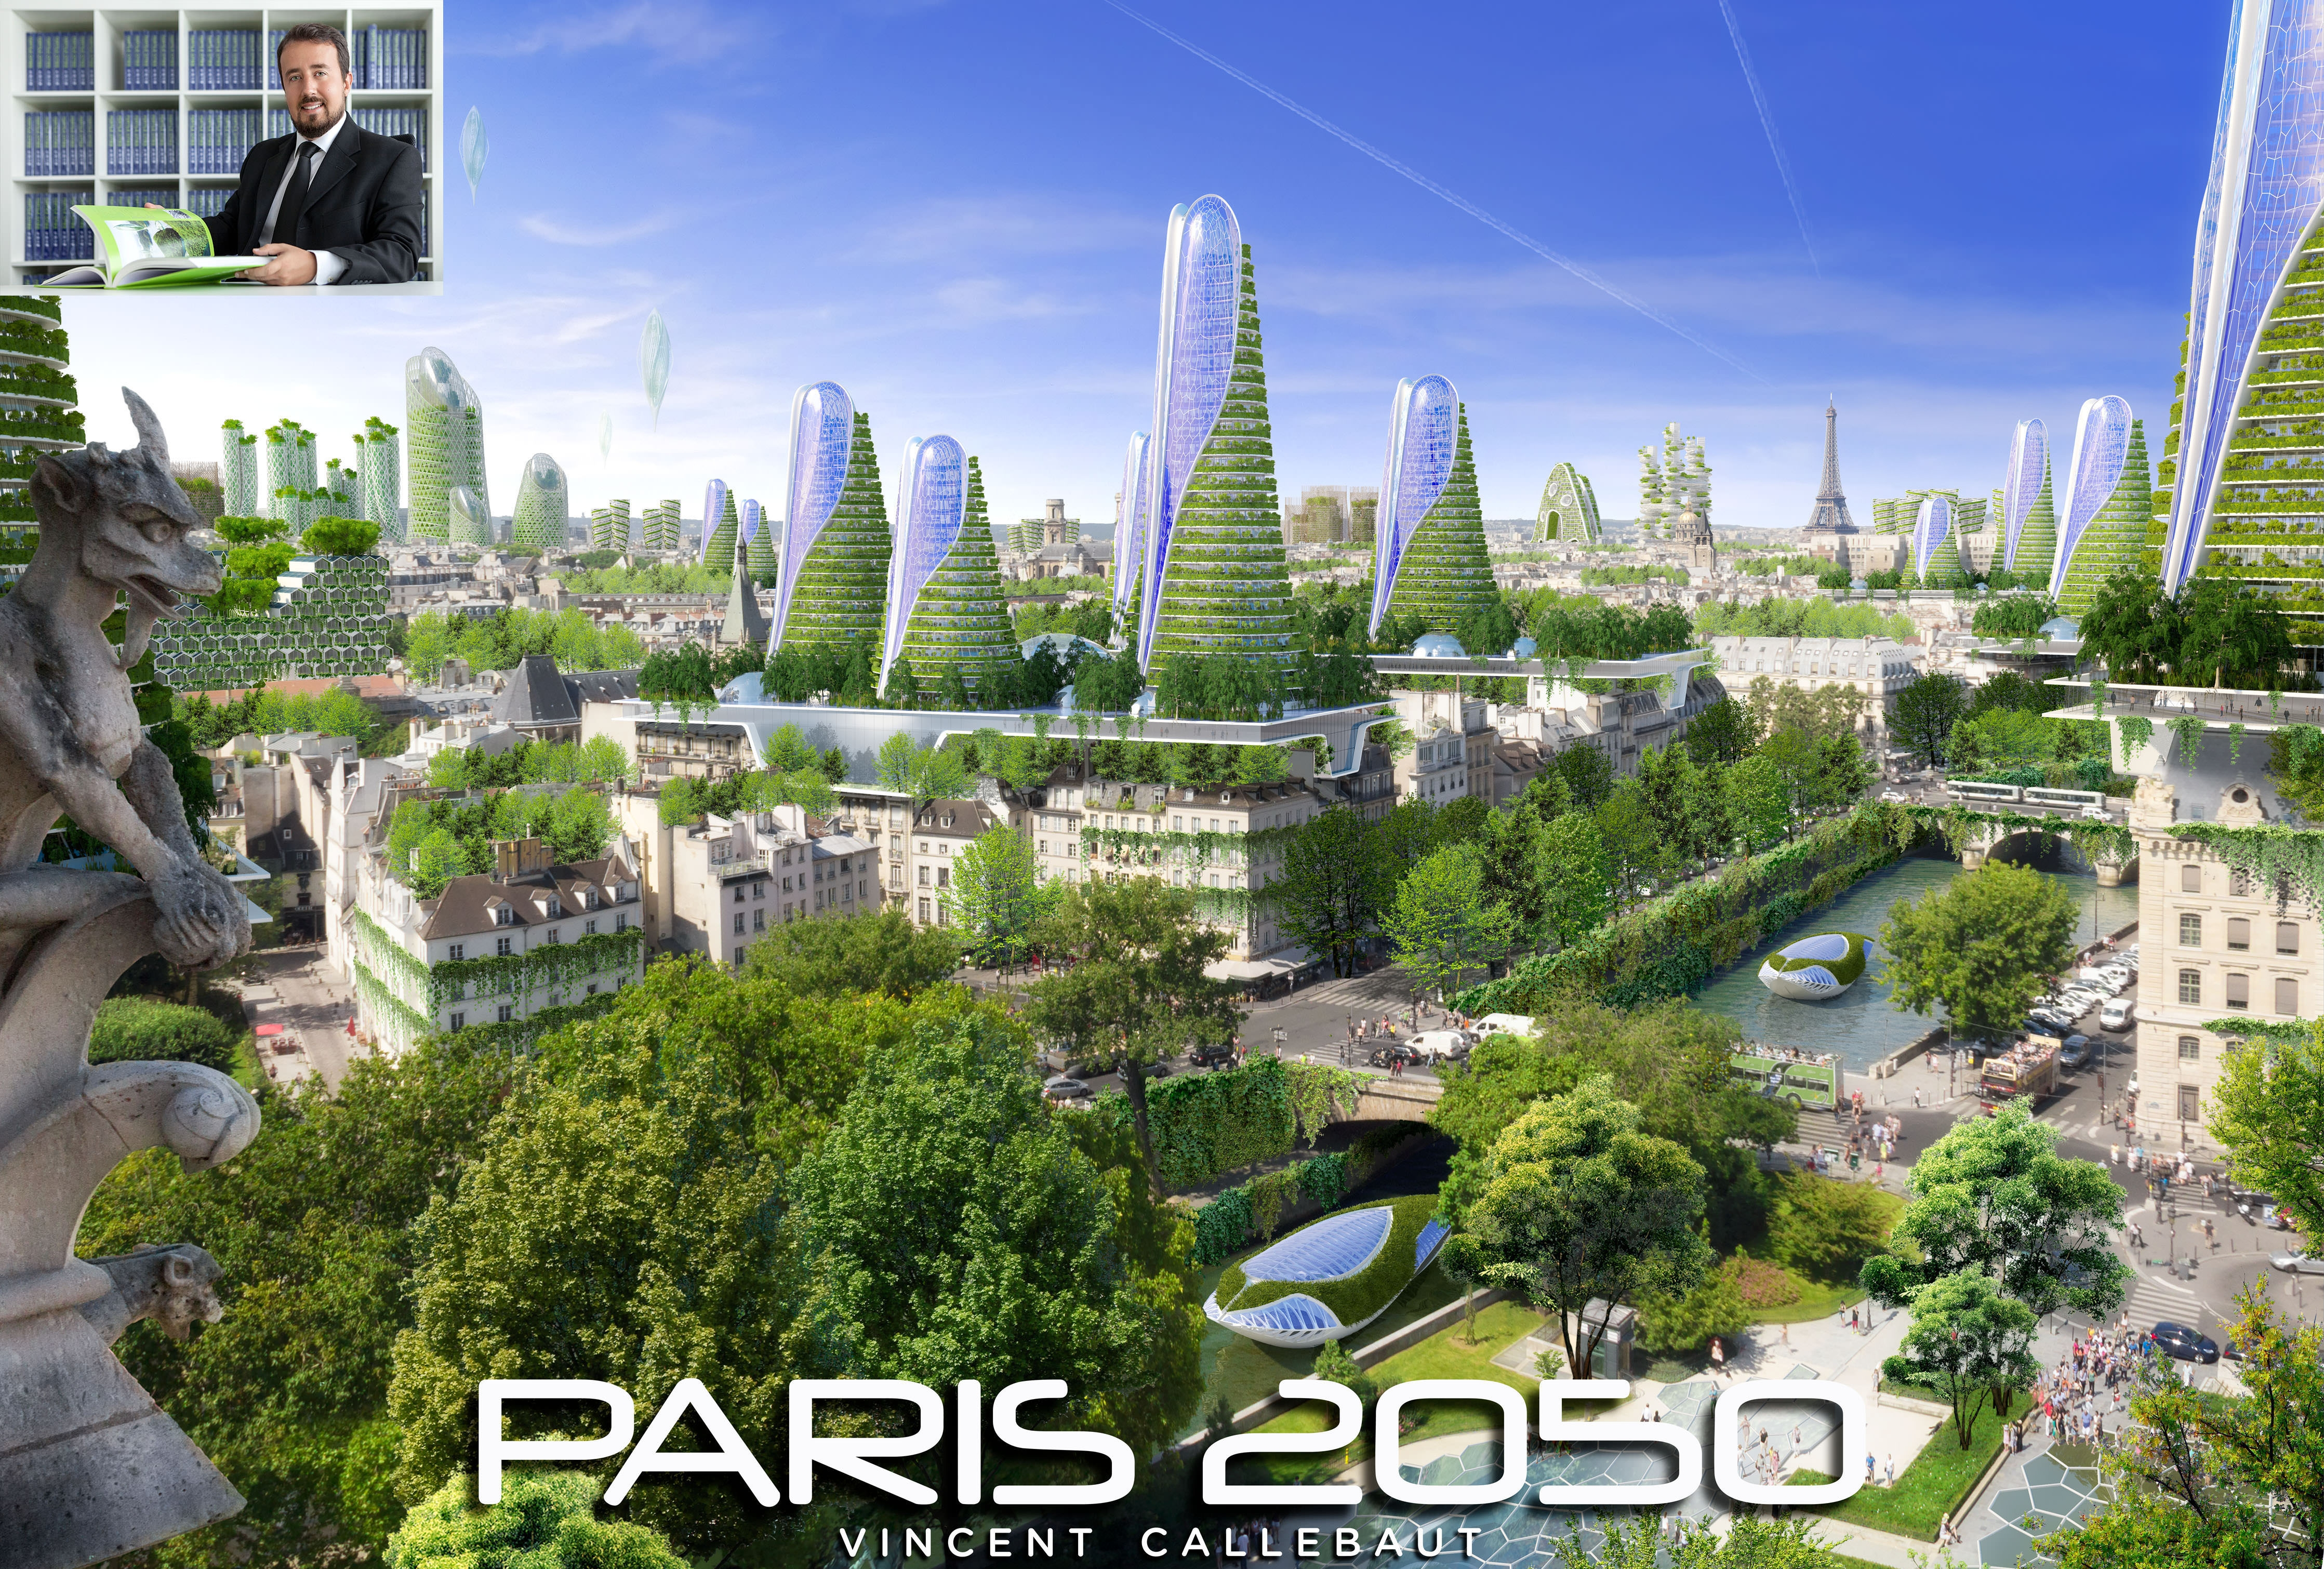 2050 Paris Smart City